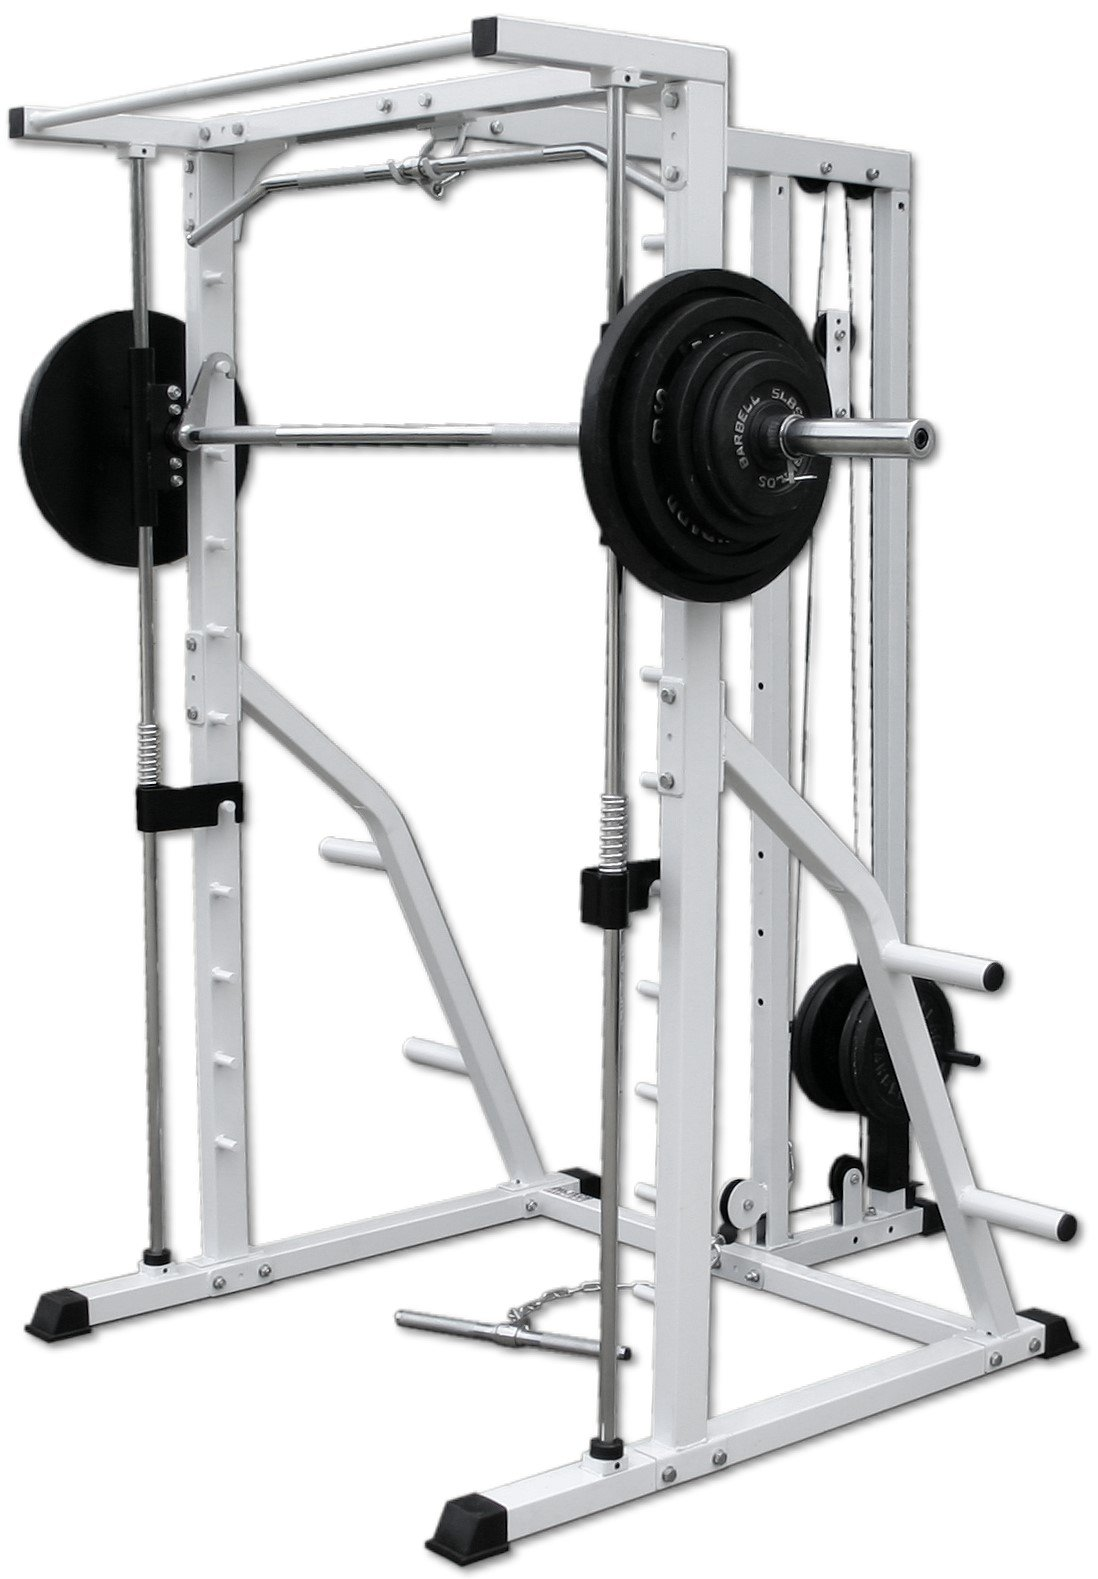 Deltech Fitness Linear Bearing Smith with Lat Attachment